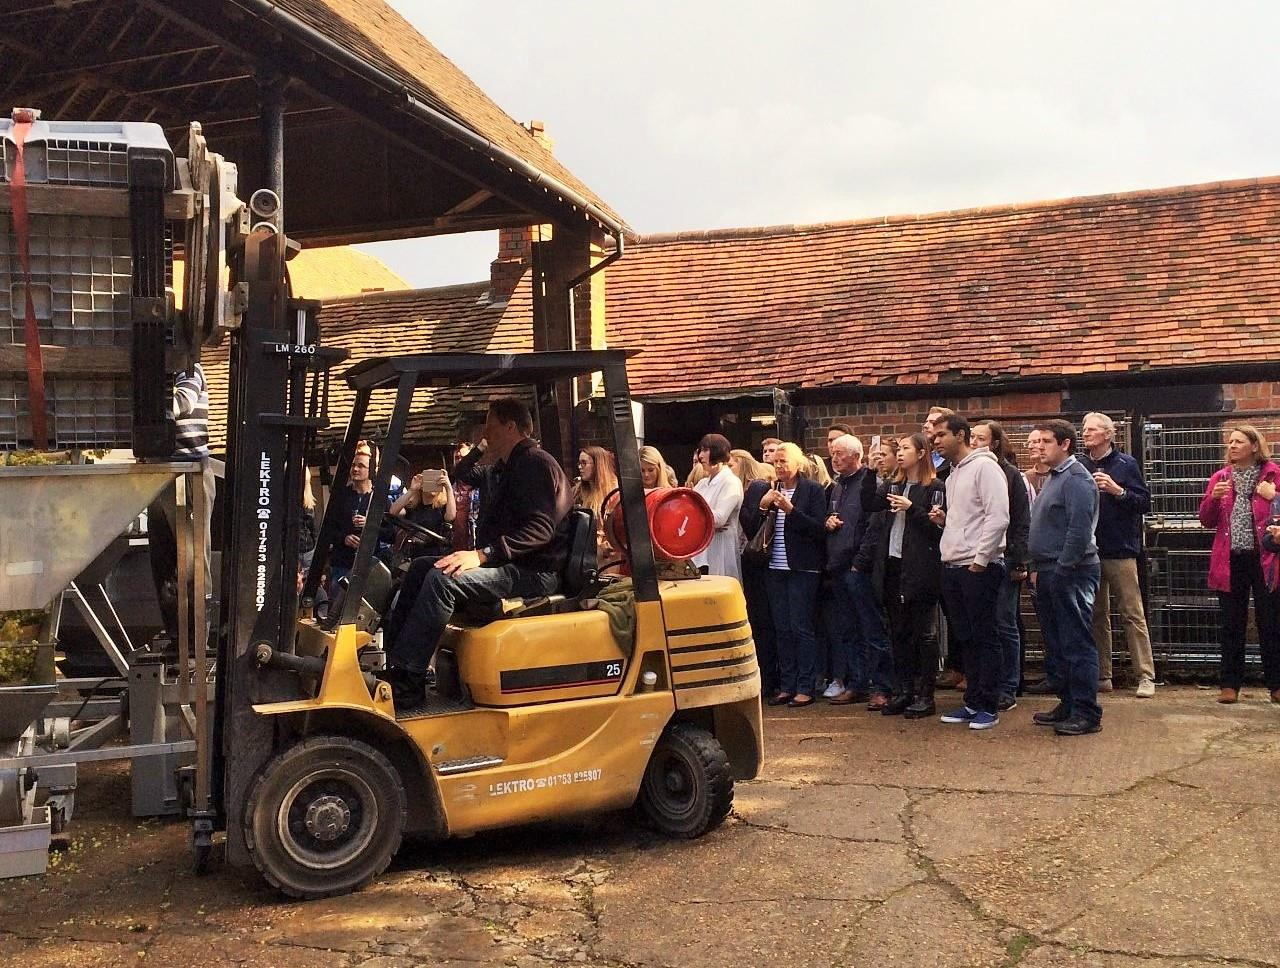 Saturday 16th November 2019 at 11 am - PUBLIC - Vineyard & Winery Tasting Tour